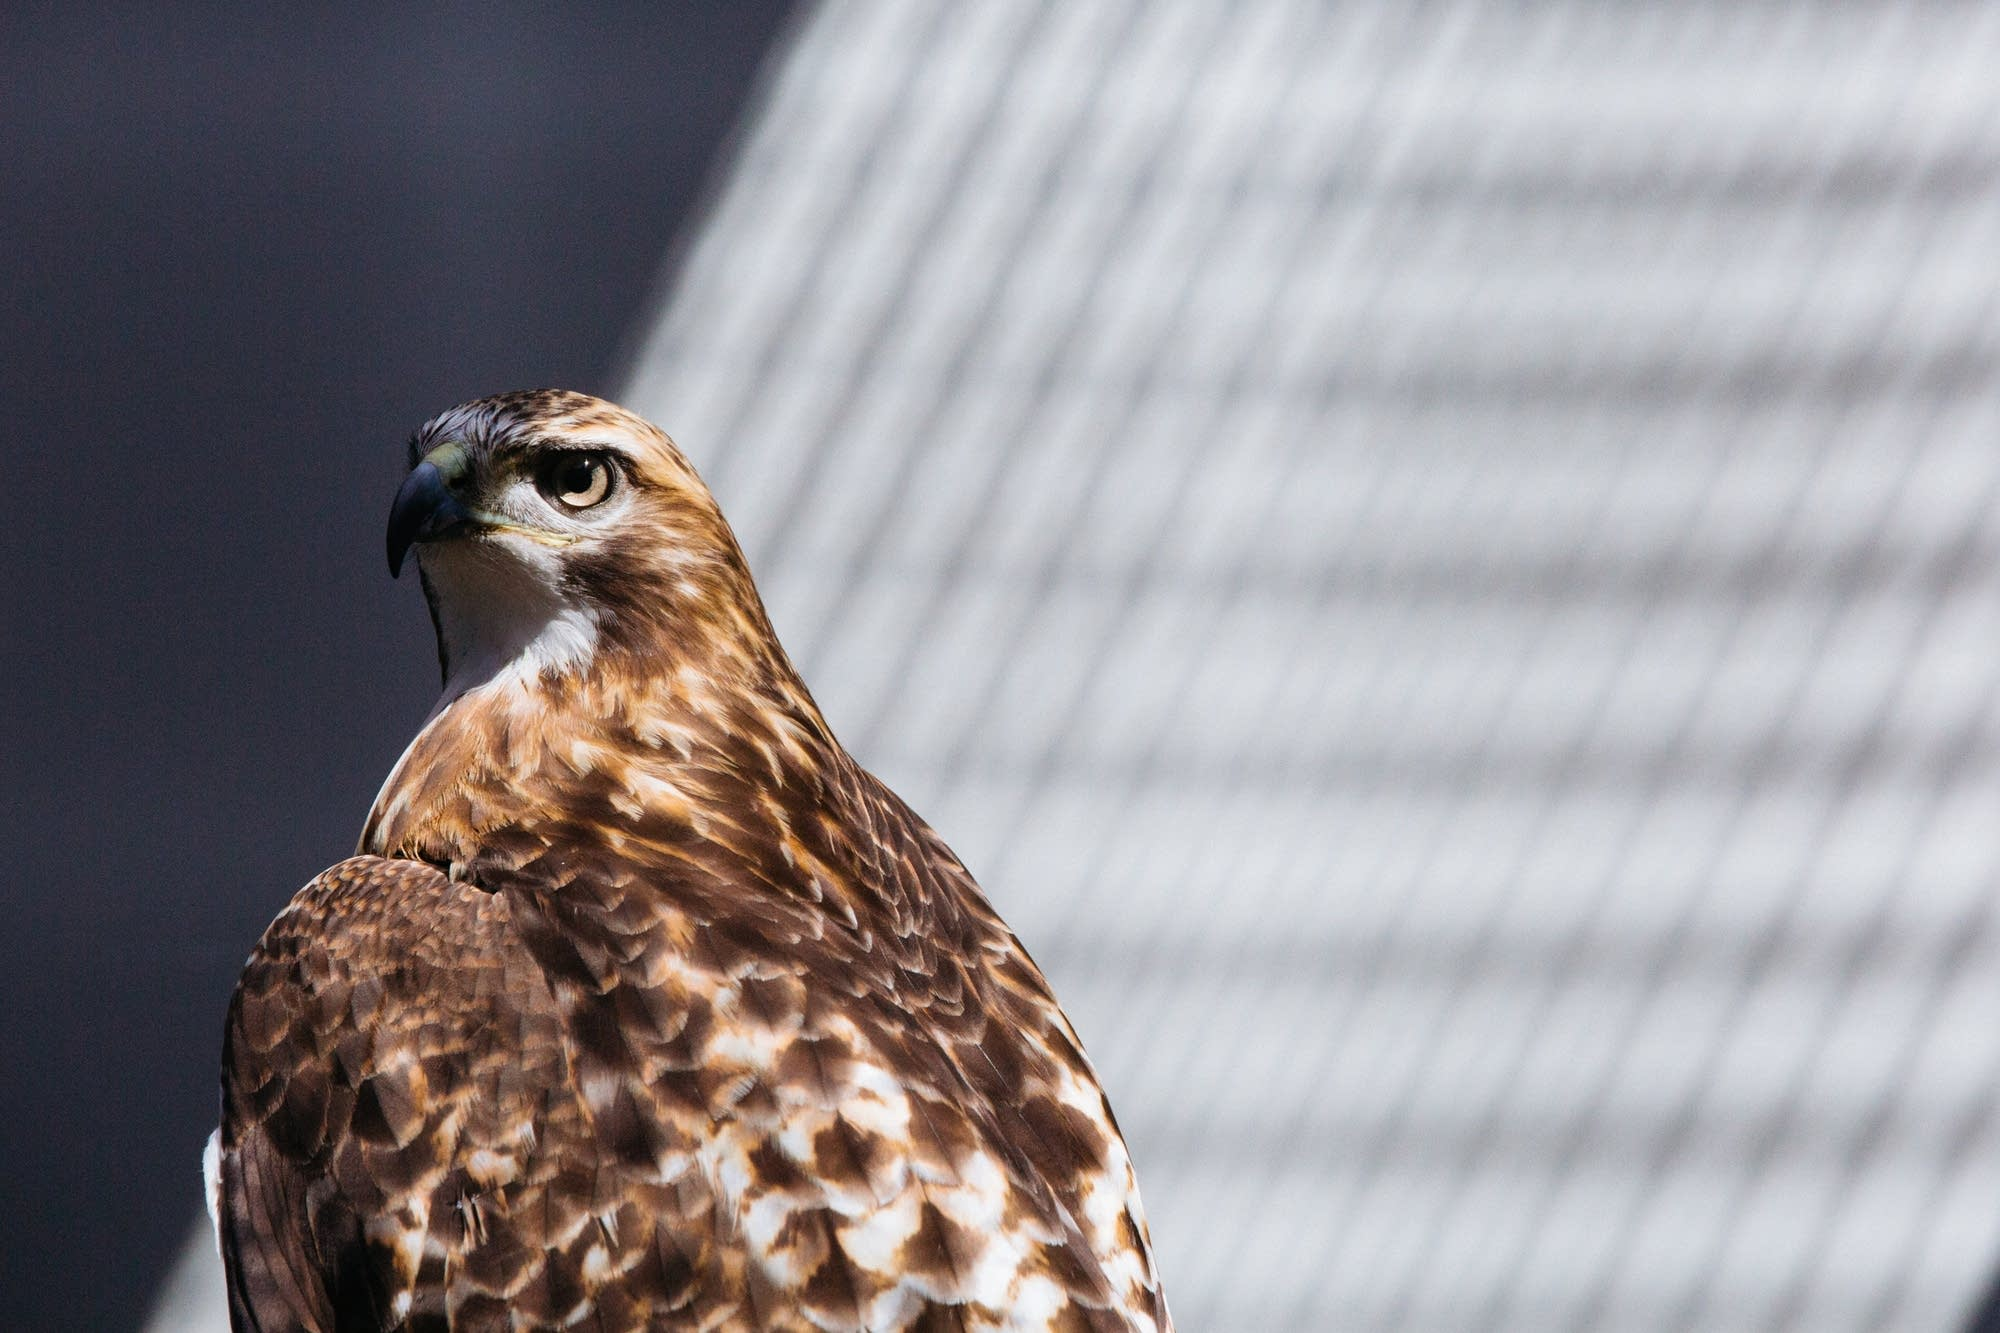 A red tailed hawk named Rowan sits in the sun.